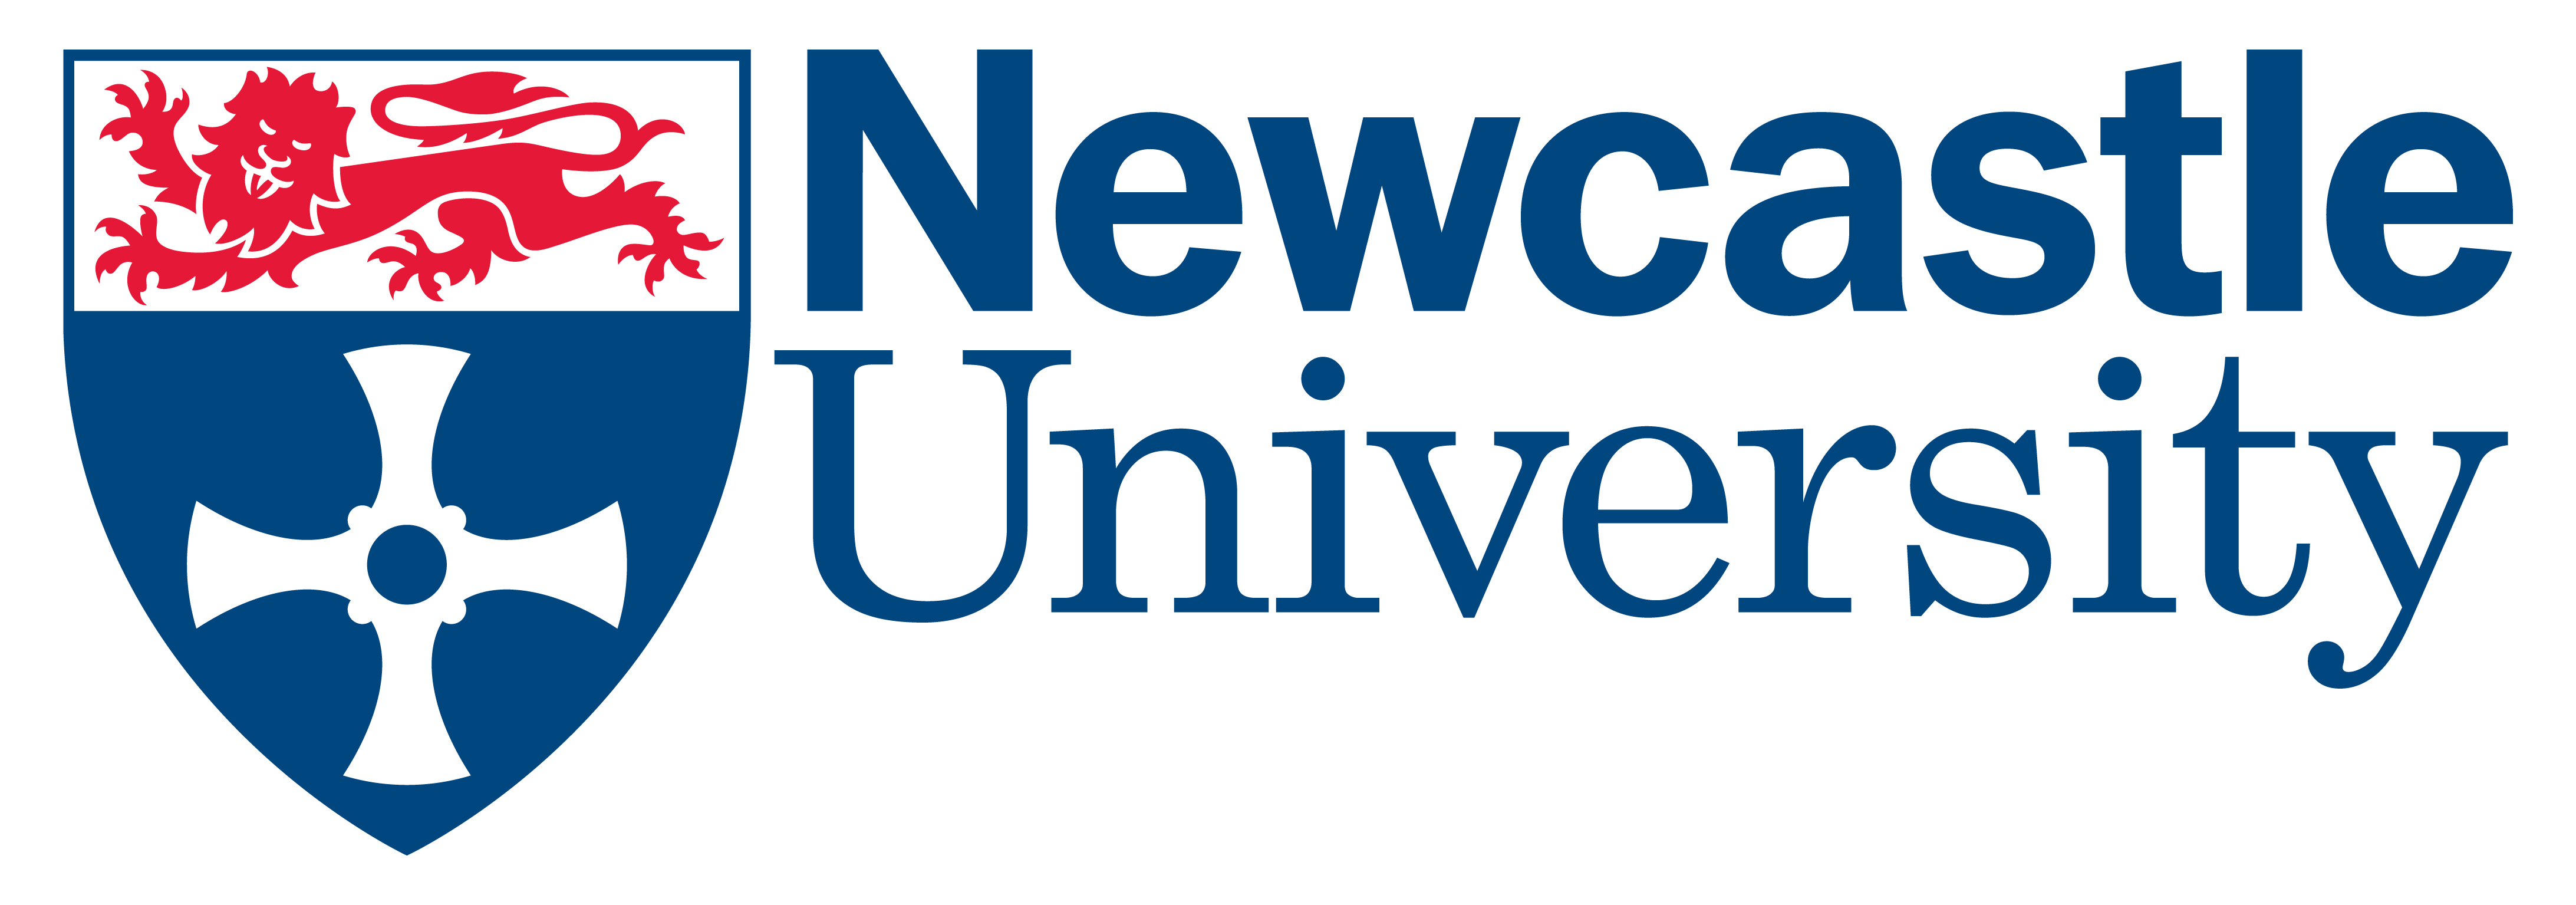 University Logo - NCL Uni blue ltrs on white bgr